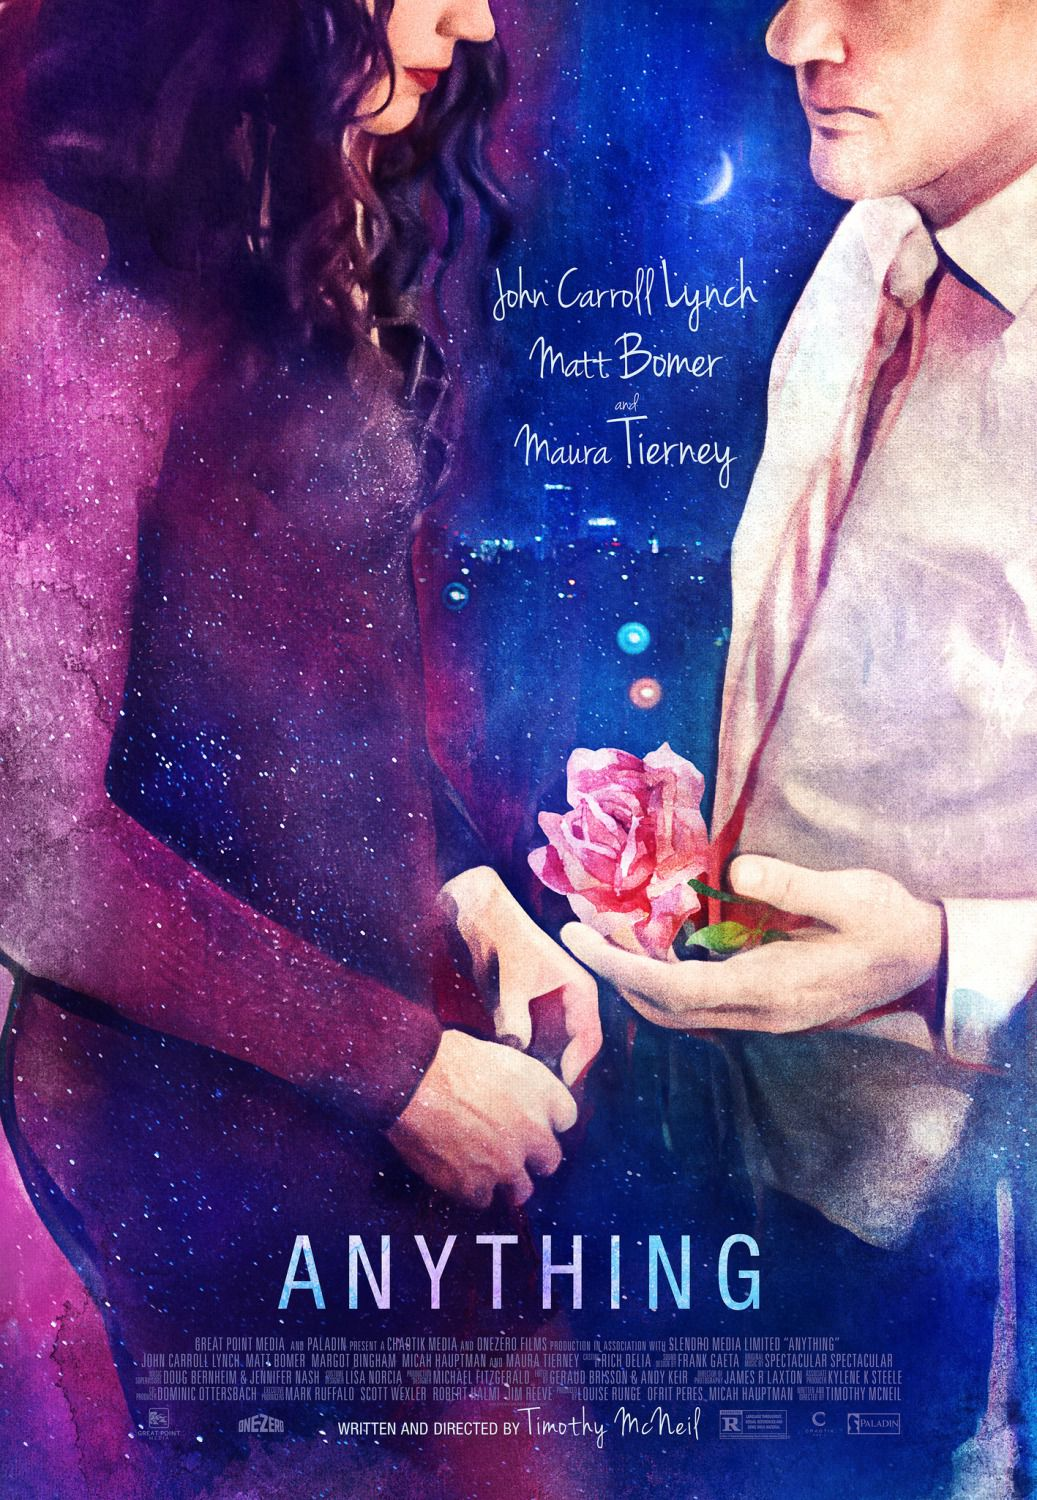 Anything - Cast: John Carroll Lynch, Matt Bomer, Maura Tierney - love poster film rose